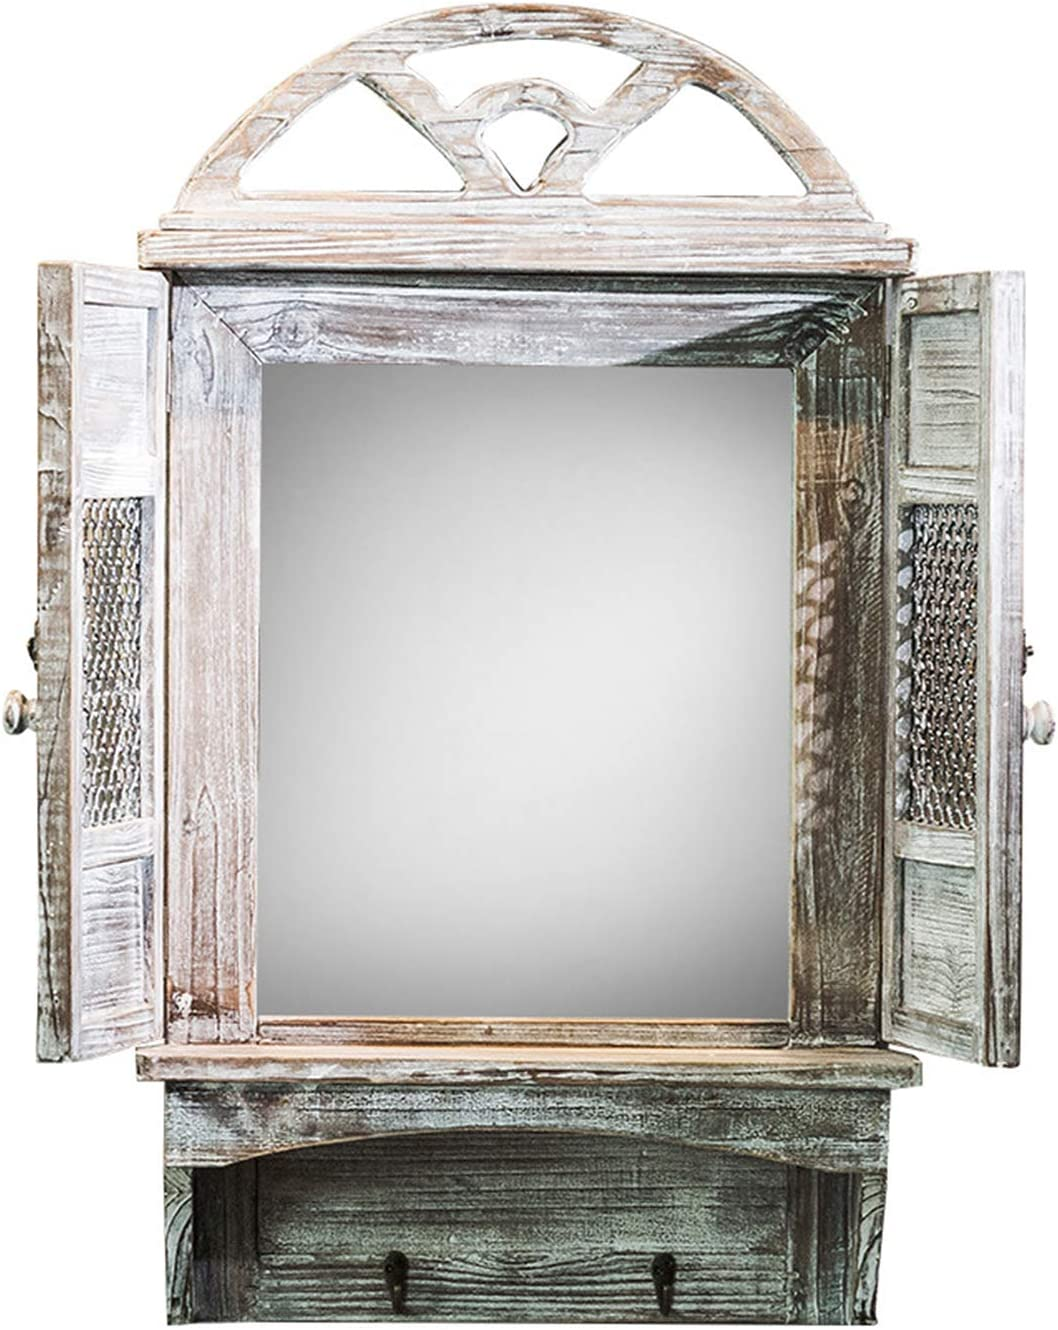 Xcxdx Wall Mirror Shabby Antique Rectangular Mirror With Storage Panel Unique Wall Mounted Window Mirror For Decor Amazon Co Uk Kitchen Home